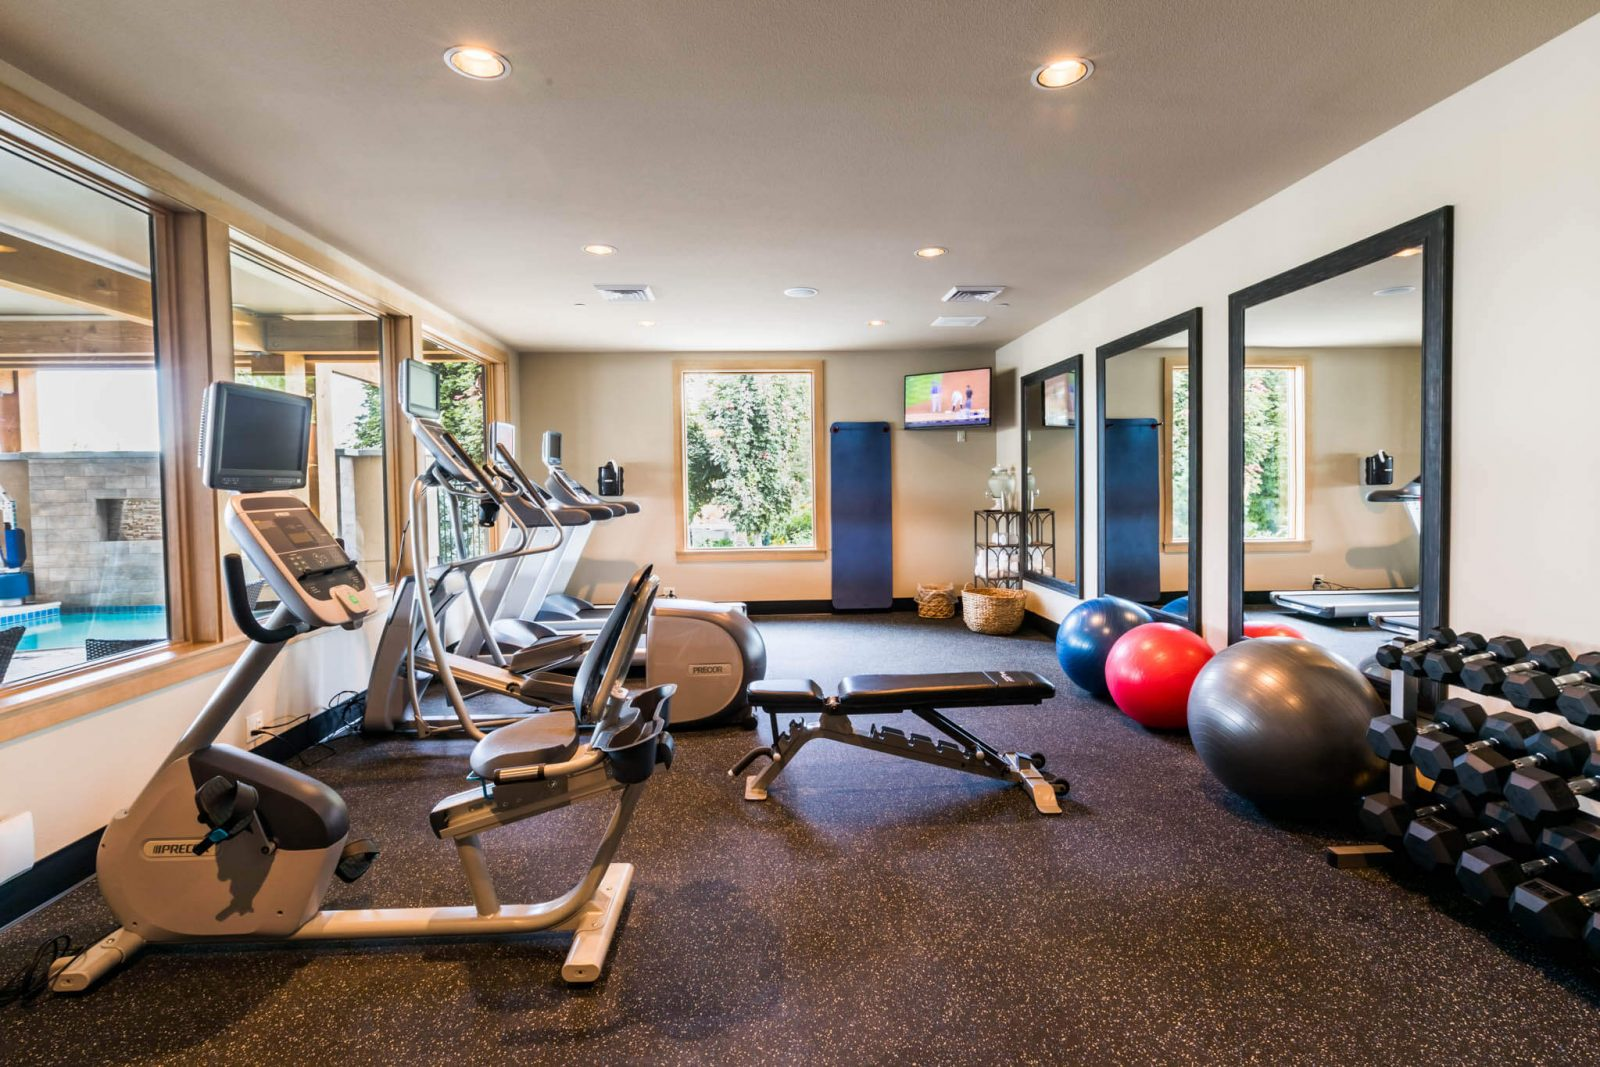 Check out our amazing fitness center